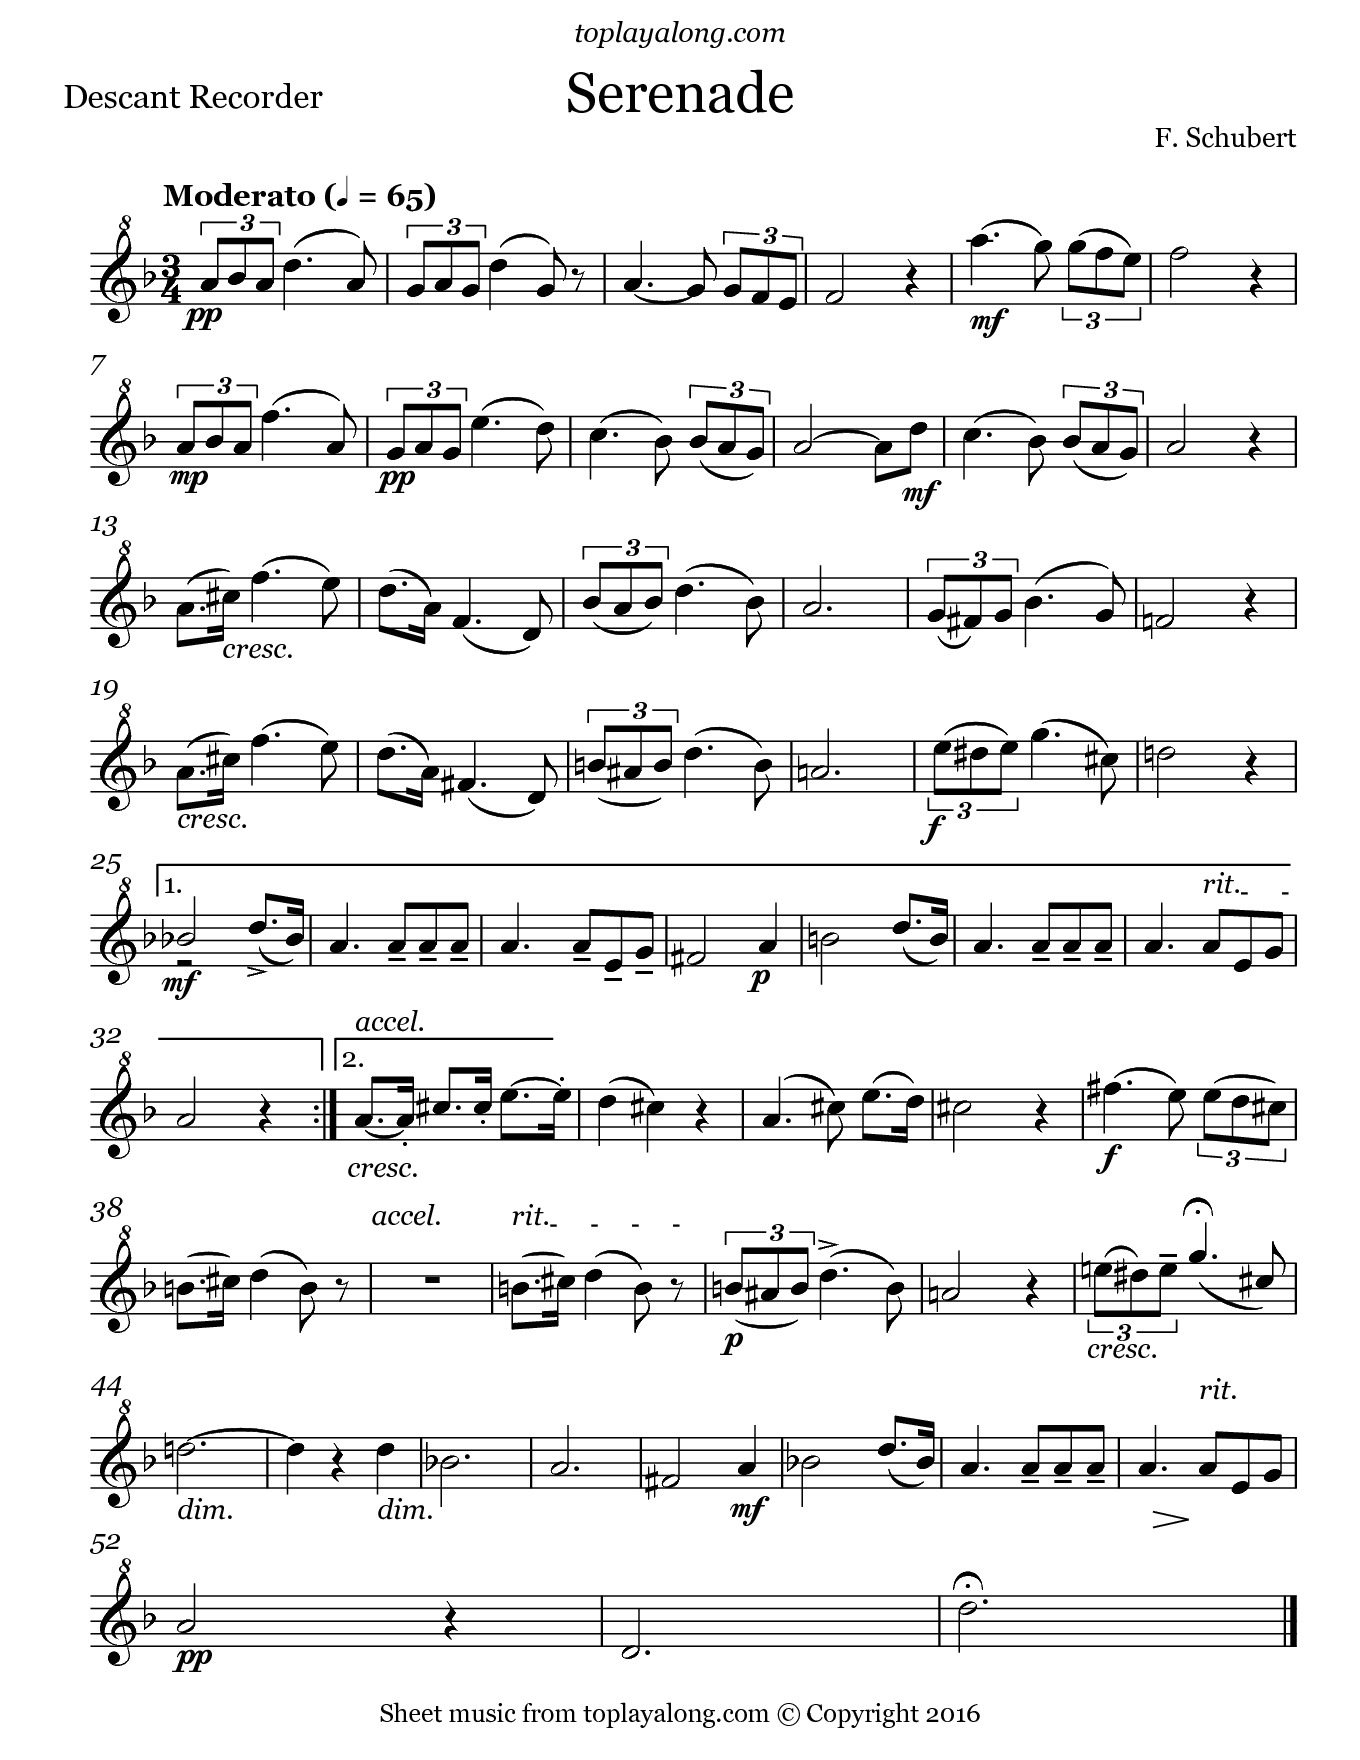 Serenade by Schubert. Sheet music for Recorder, page 1.